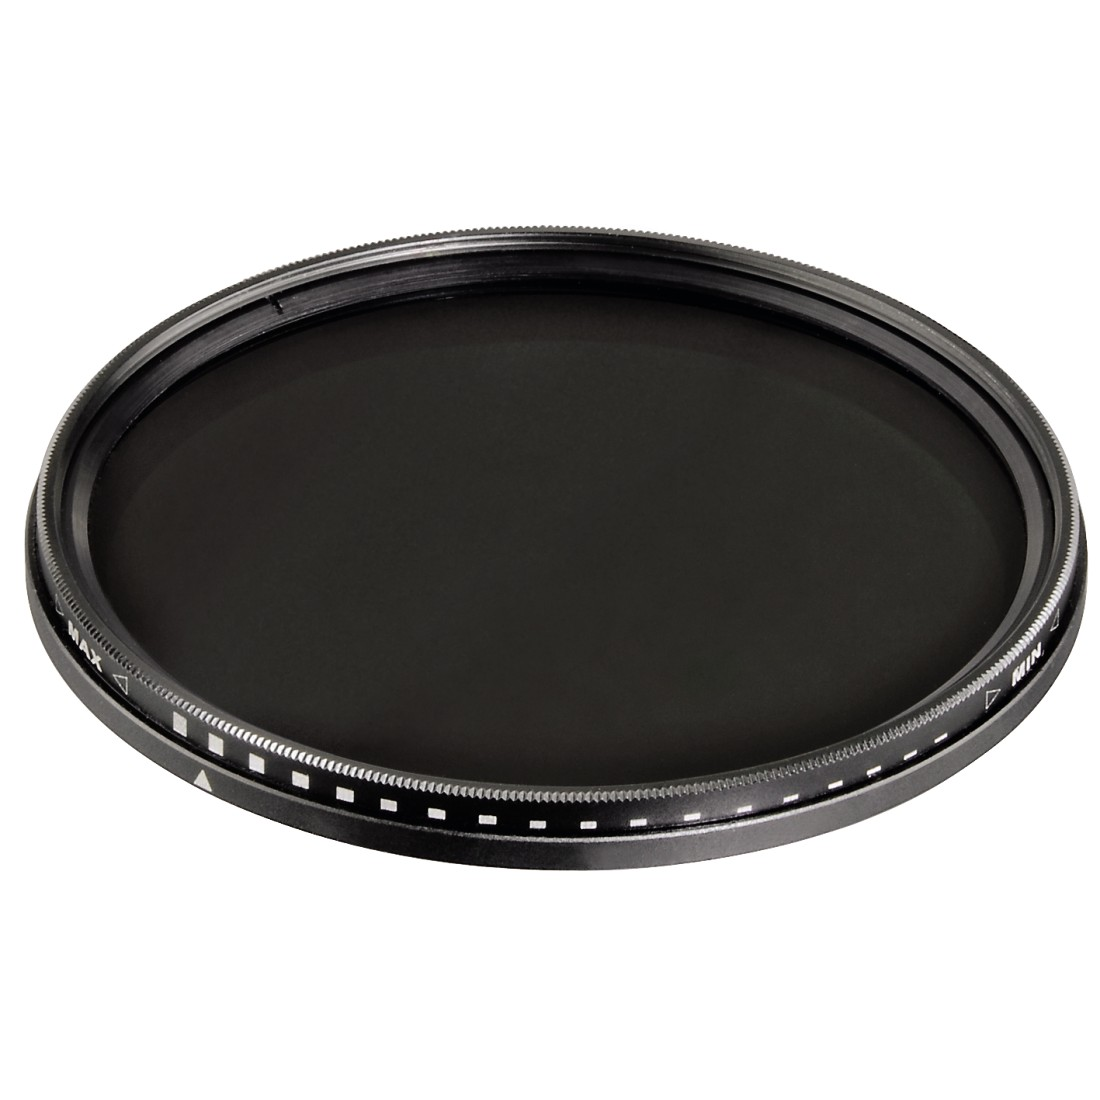 abx High-Res Image - Hama, Vario ND2-400 Neutral-Density Filter, coated, 55.0 mm